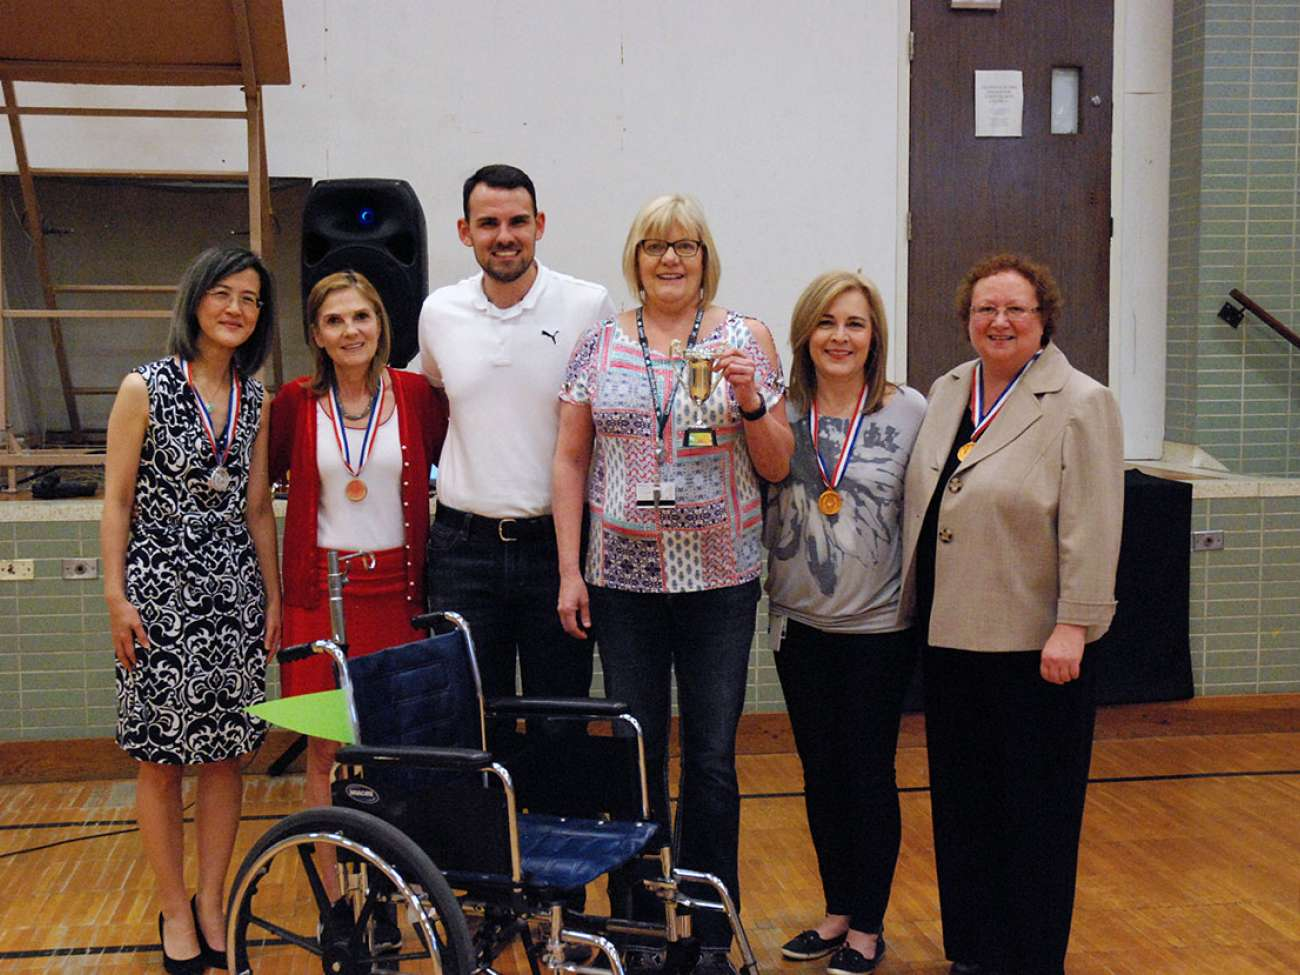 In the end, patients and families all come away the winners through a better fleet of wheelchairs at GRH.